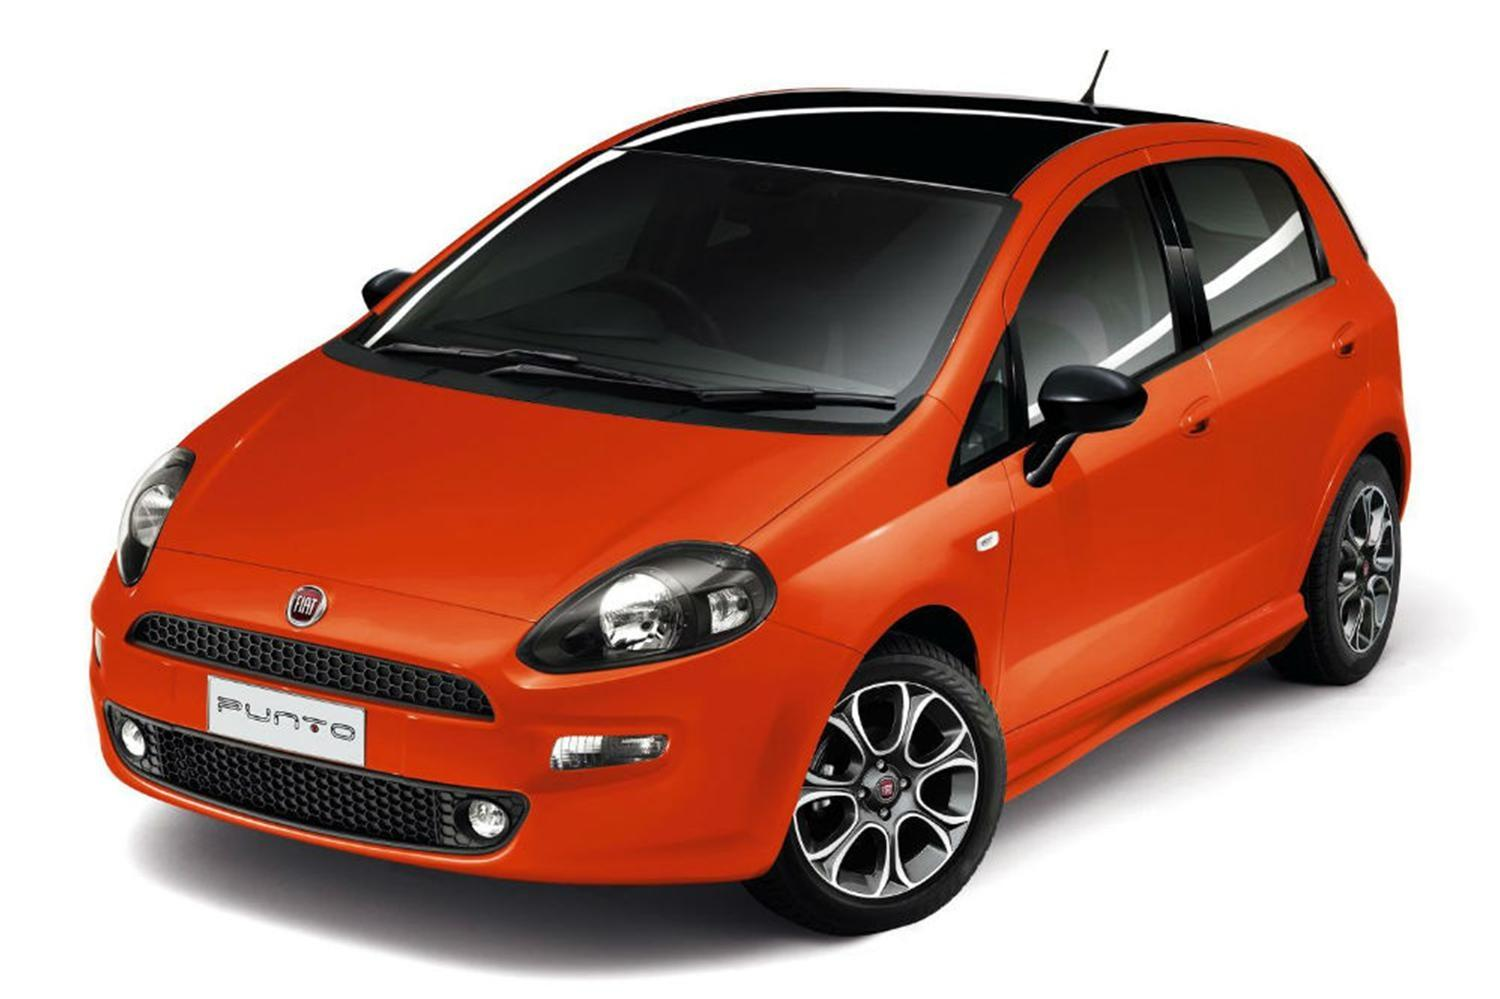 Fiat Punto gets Enhanced Specifications